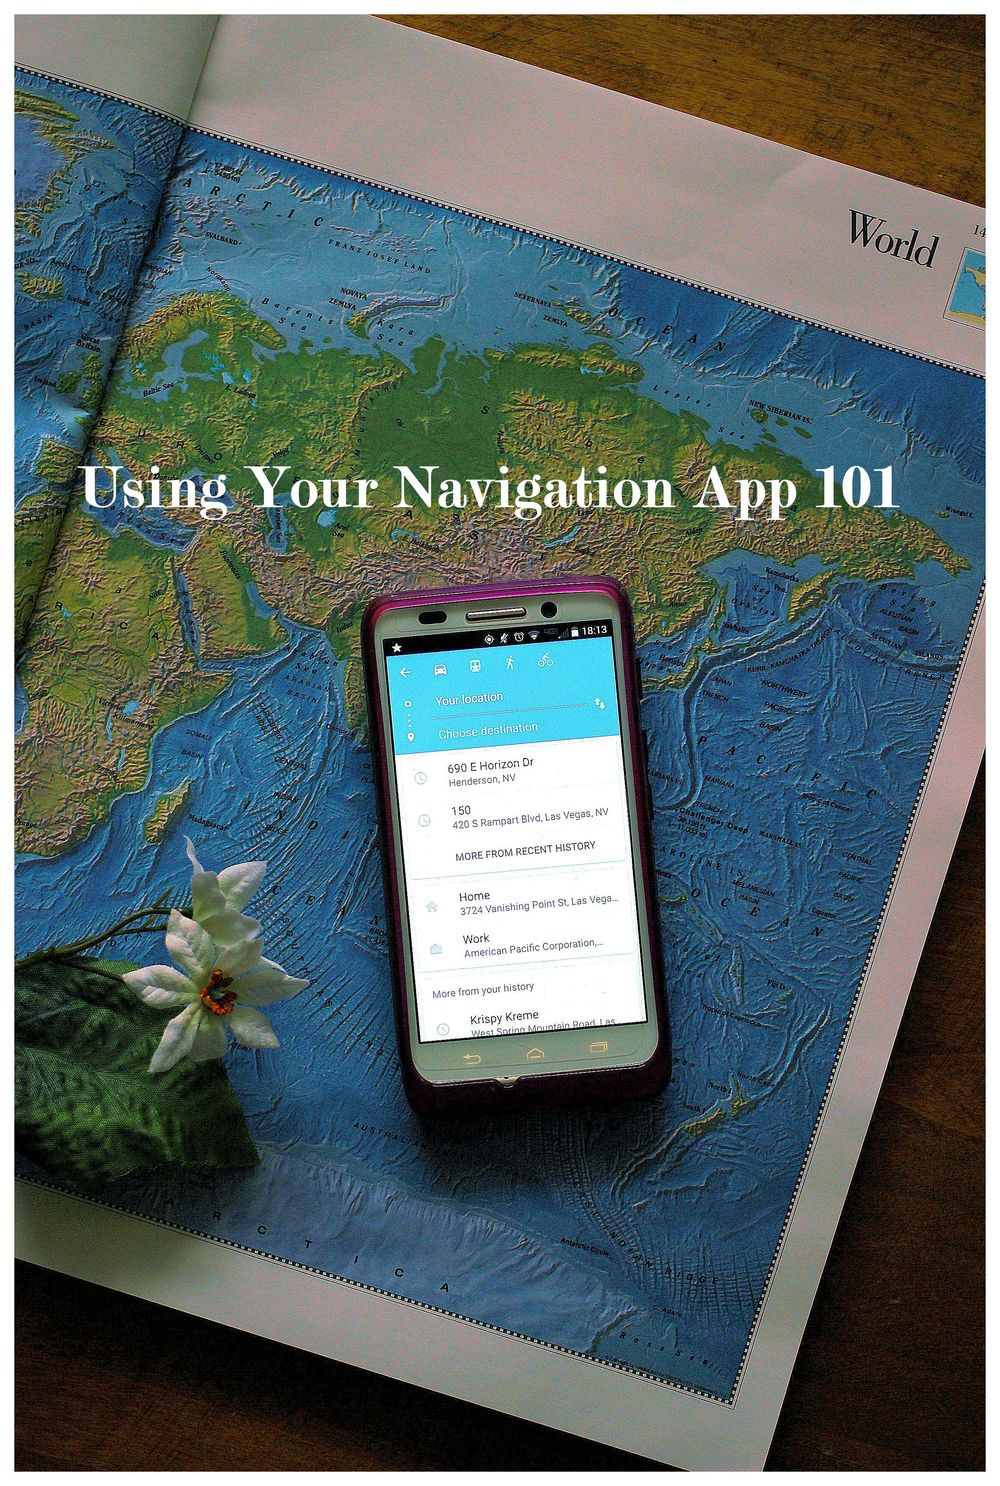 7 tips for using your navigation app by Kaleidoscopes & Polka Dots